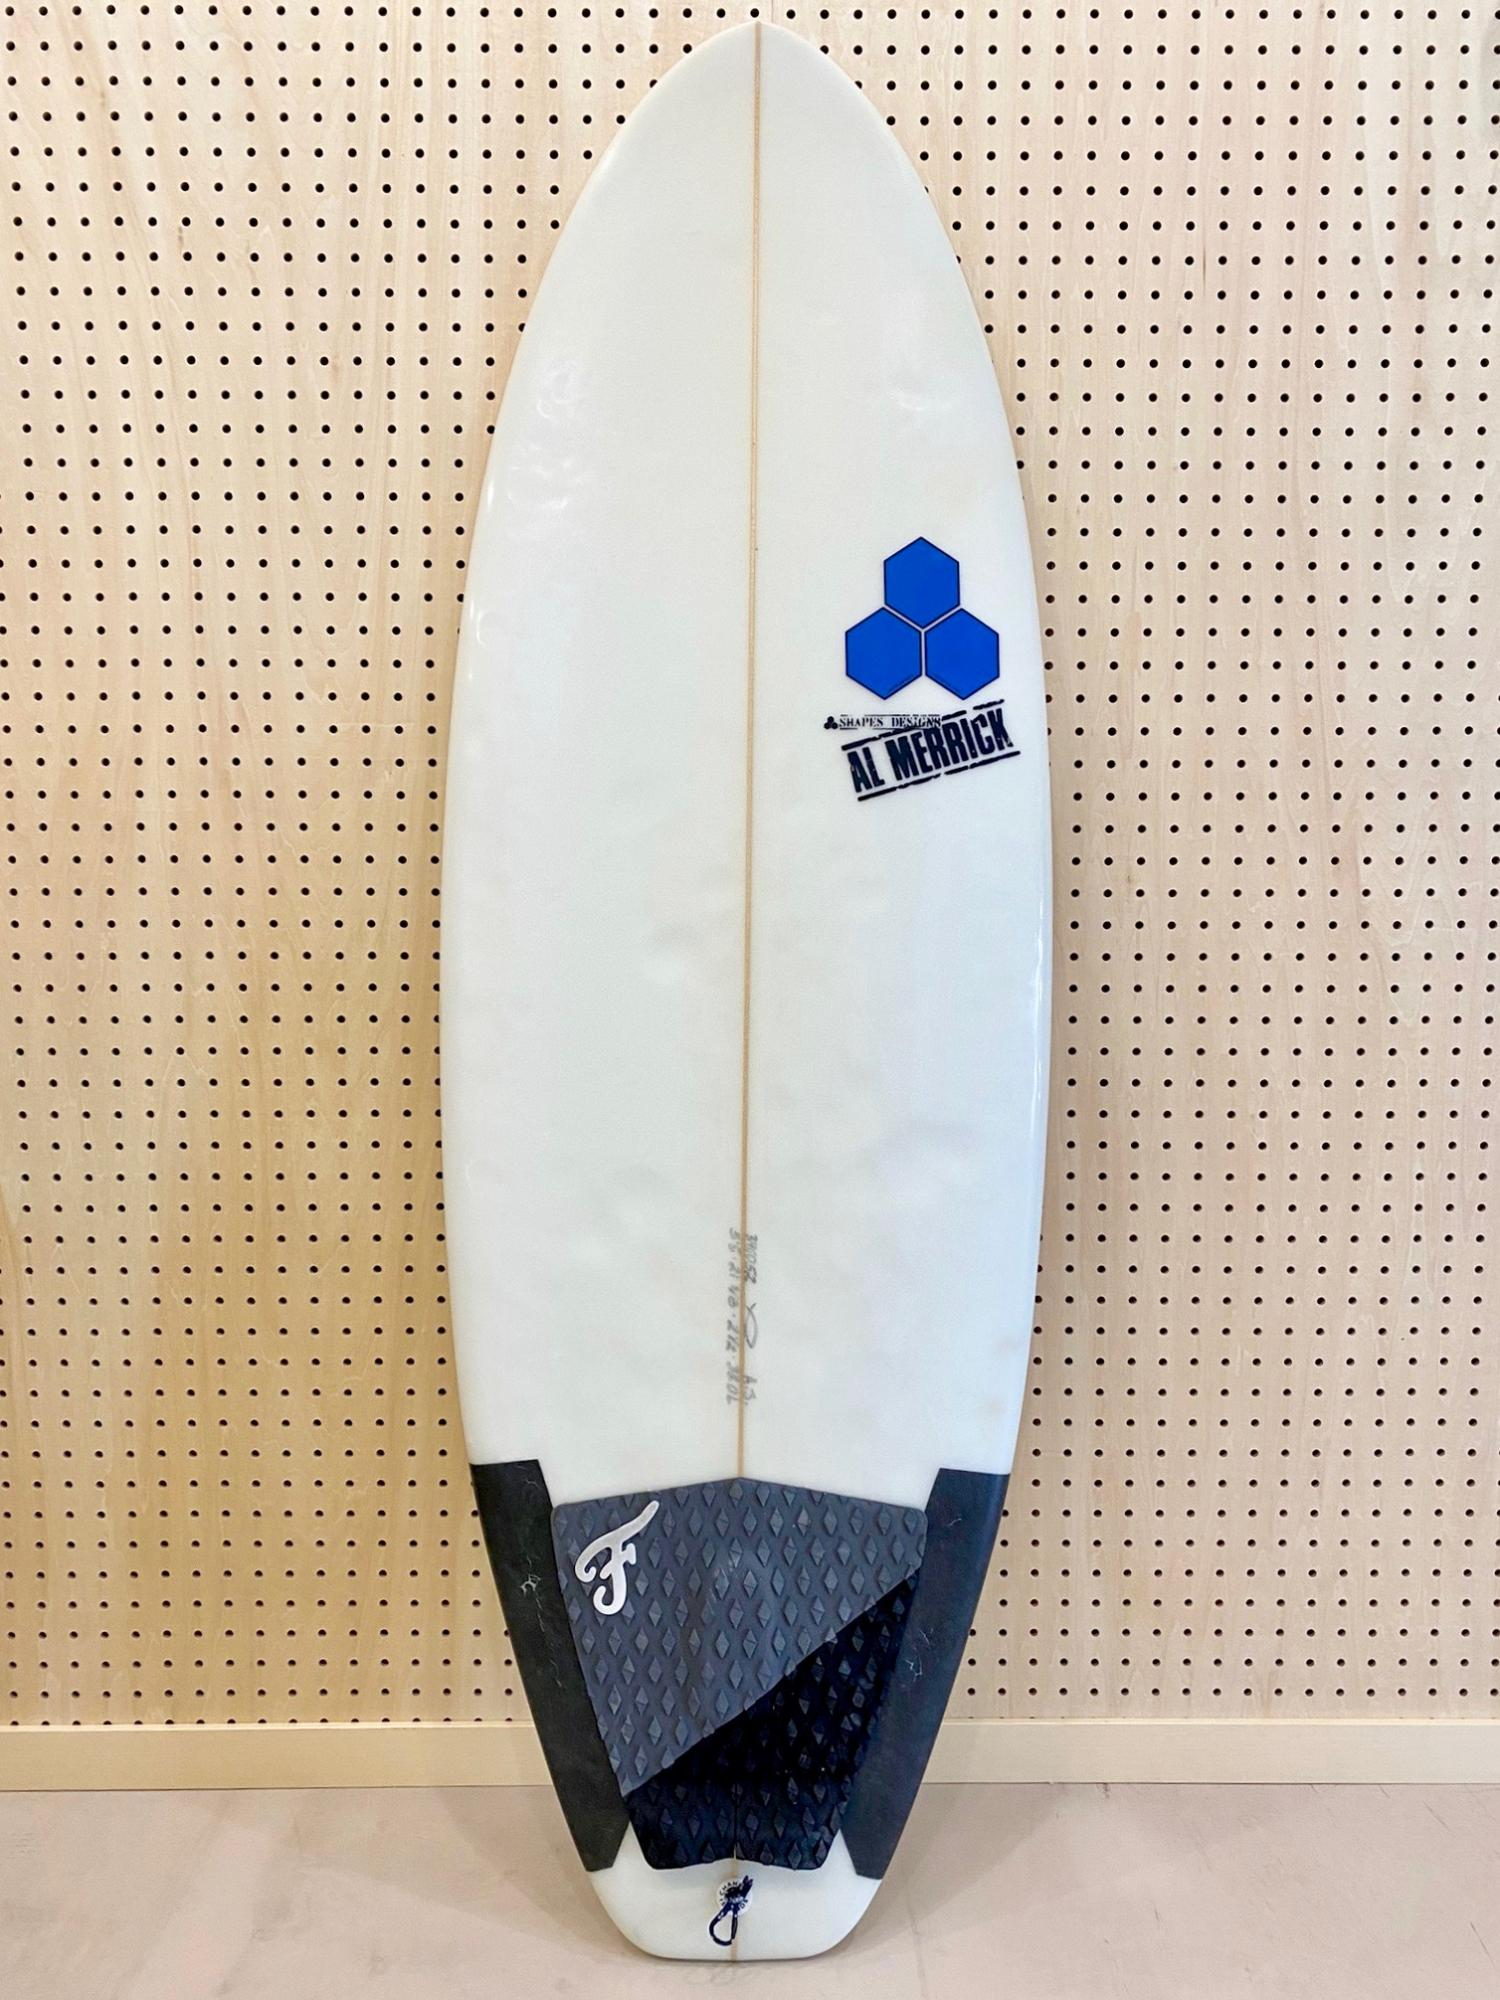 USED BOARDS (Channel Islands Fishcuit  5.4)